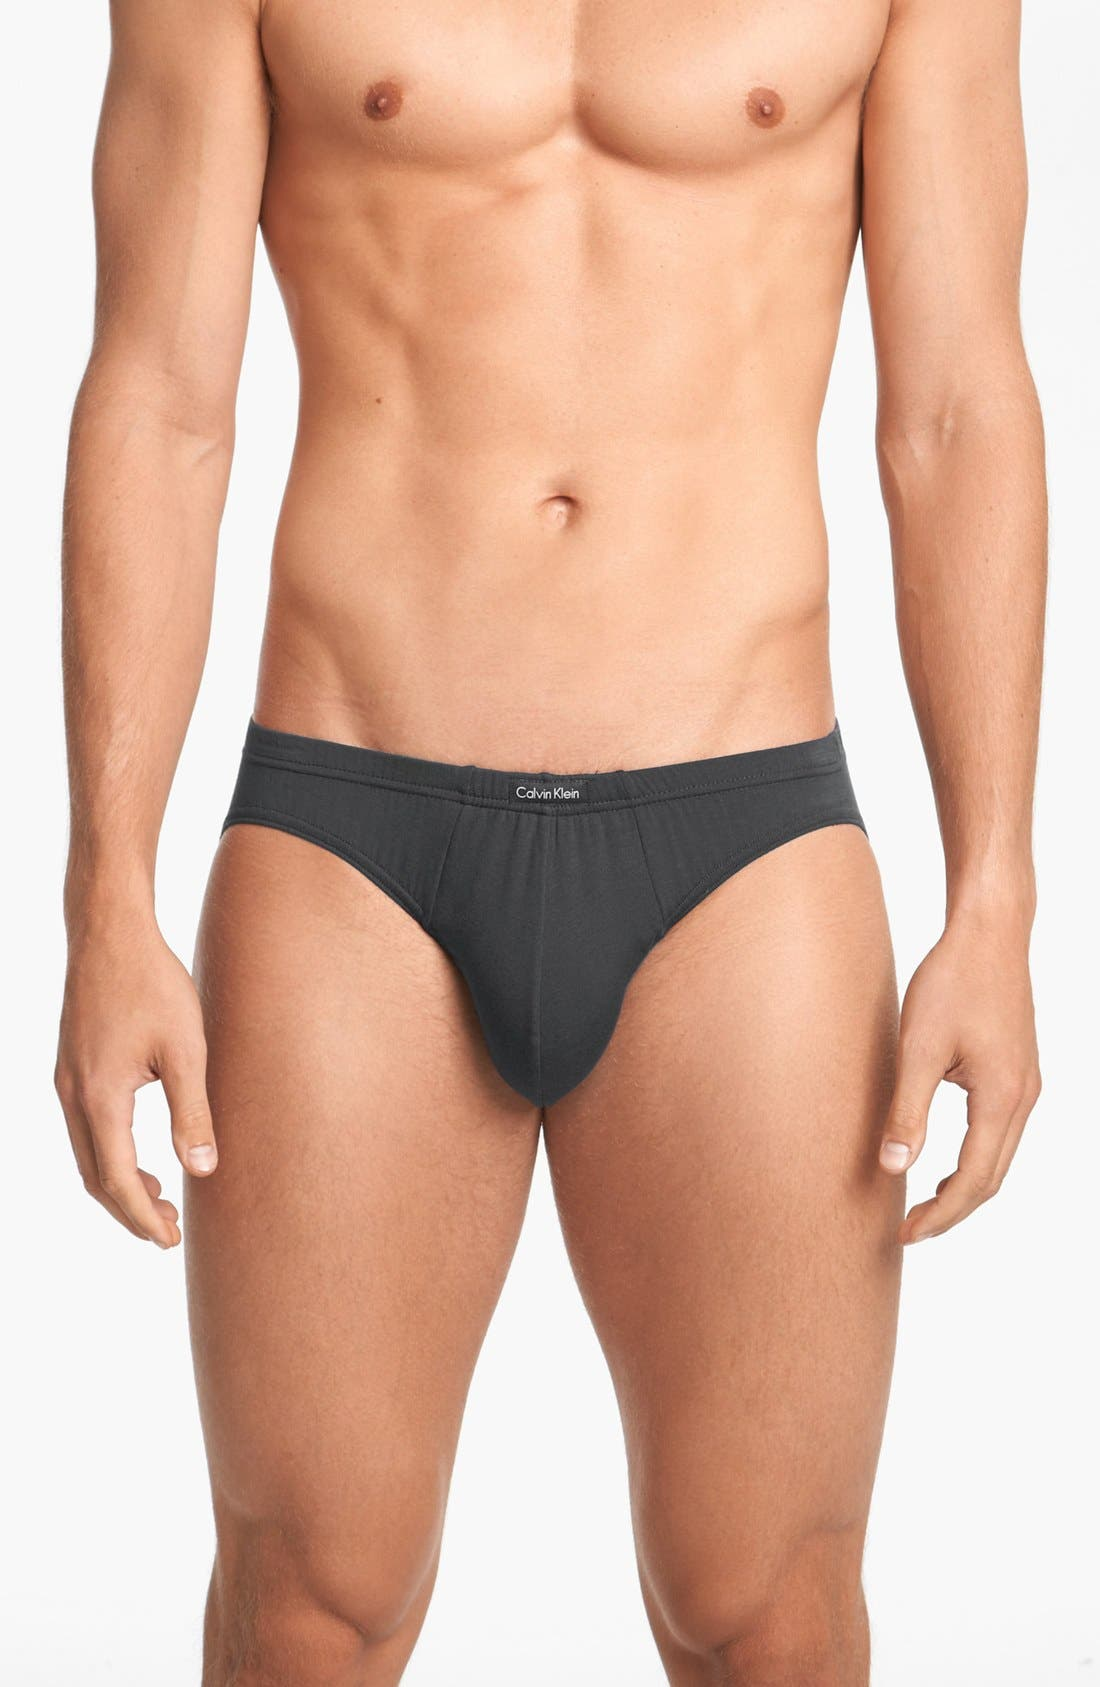 Alternate Image 1 Selected - Calvin Klein 'U5552' Micromodal Bikini Briefs